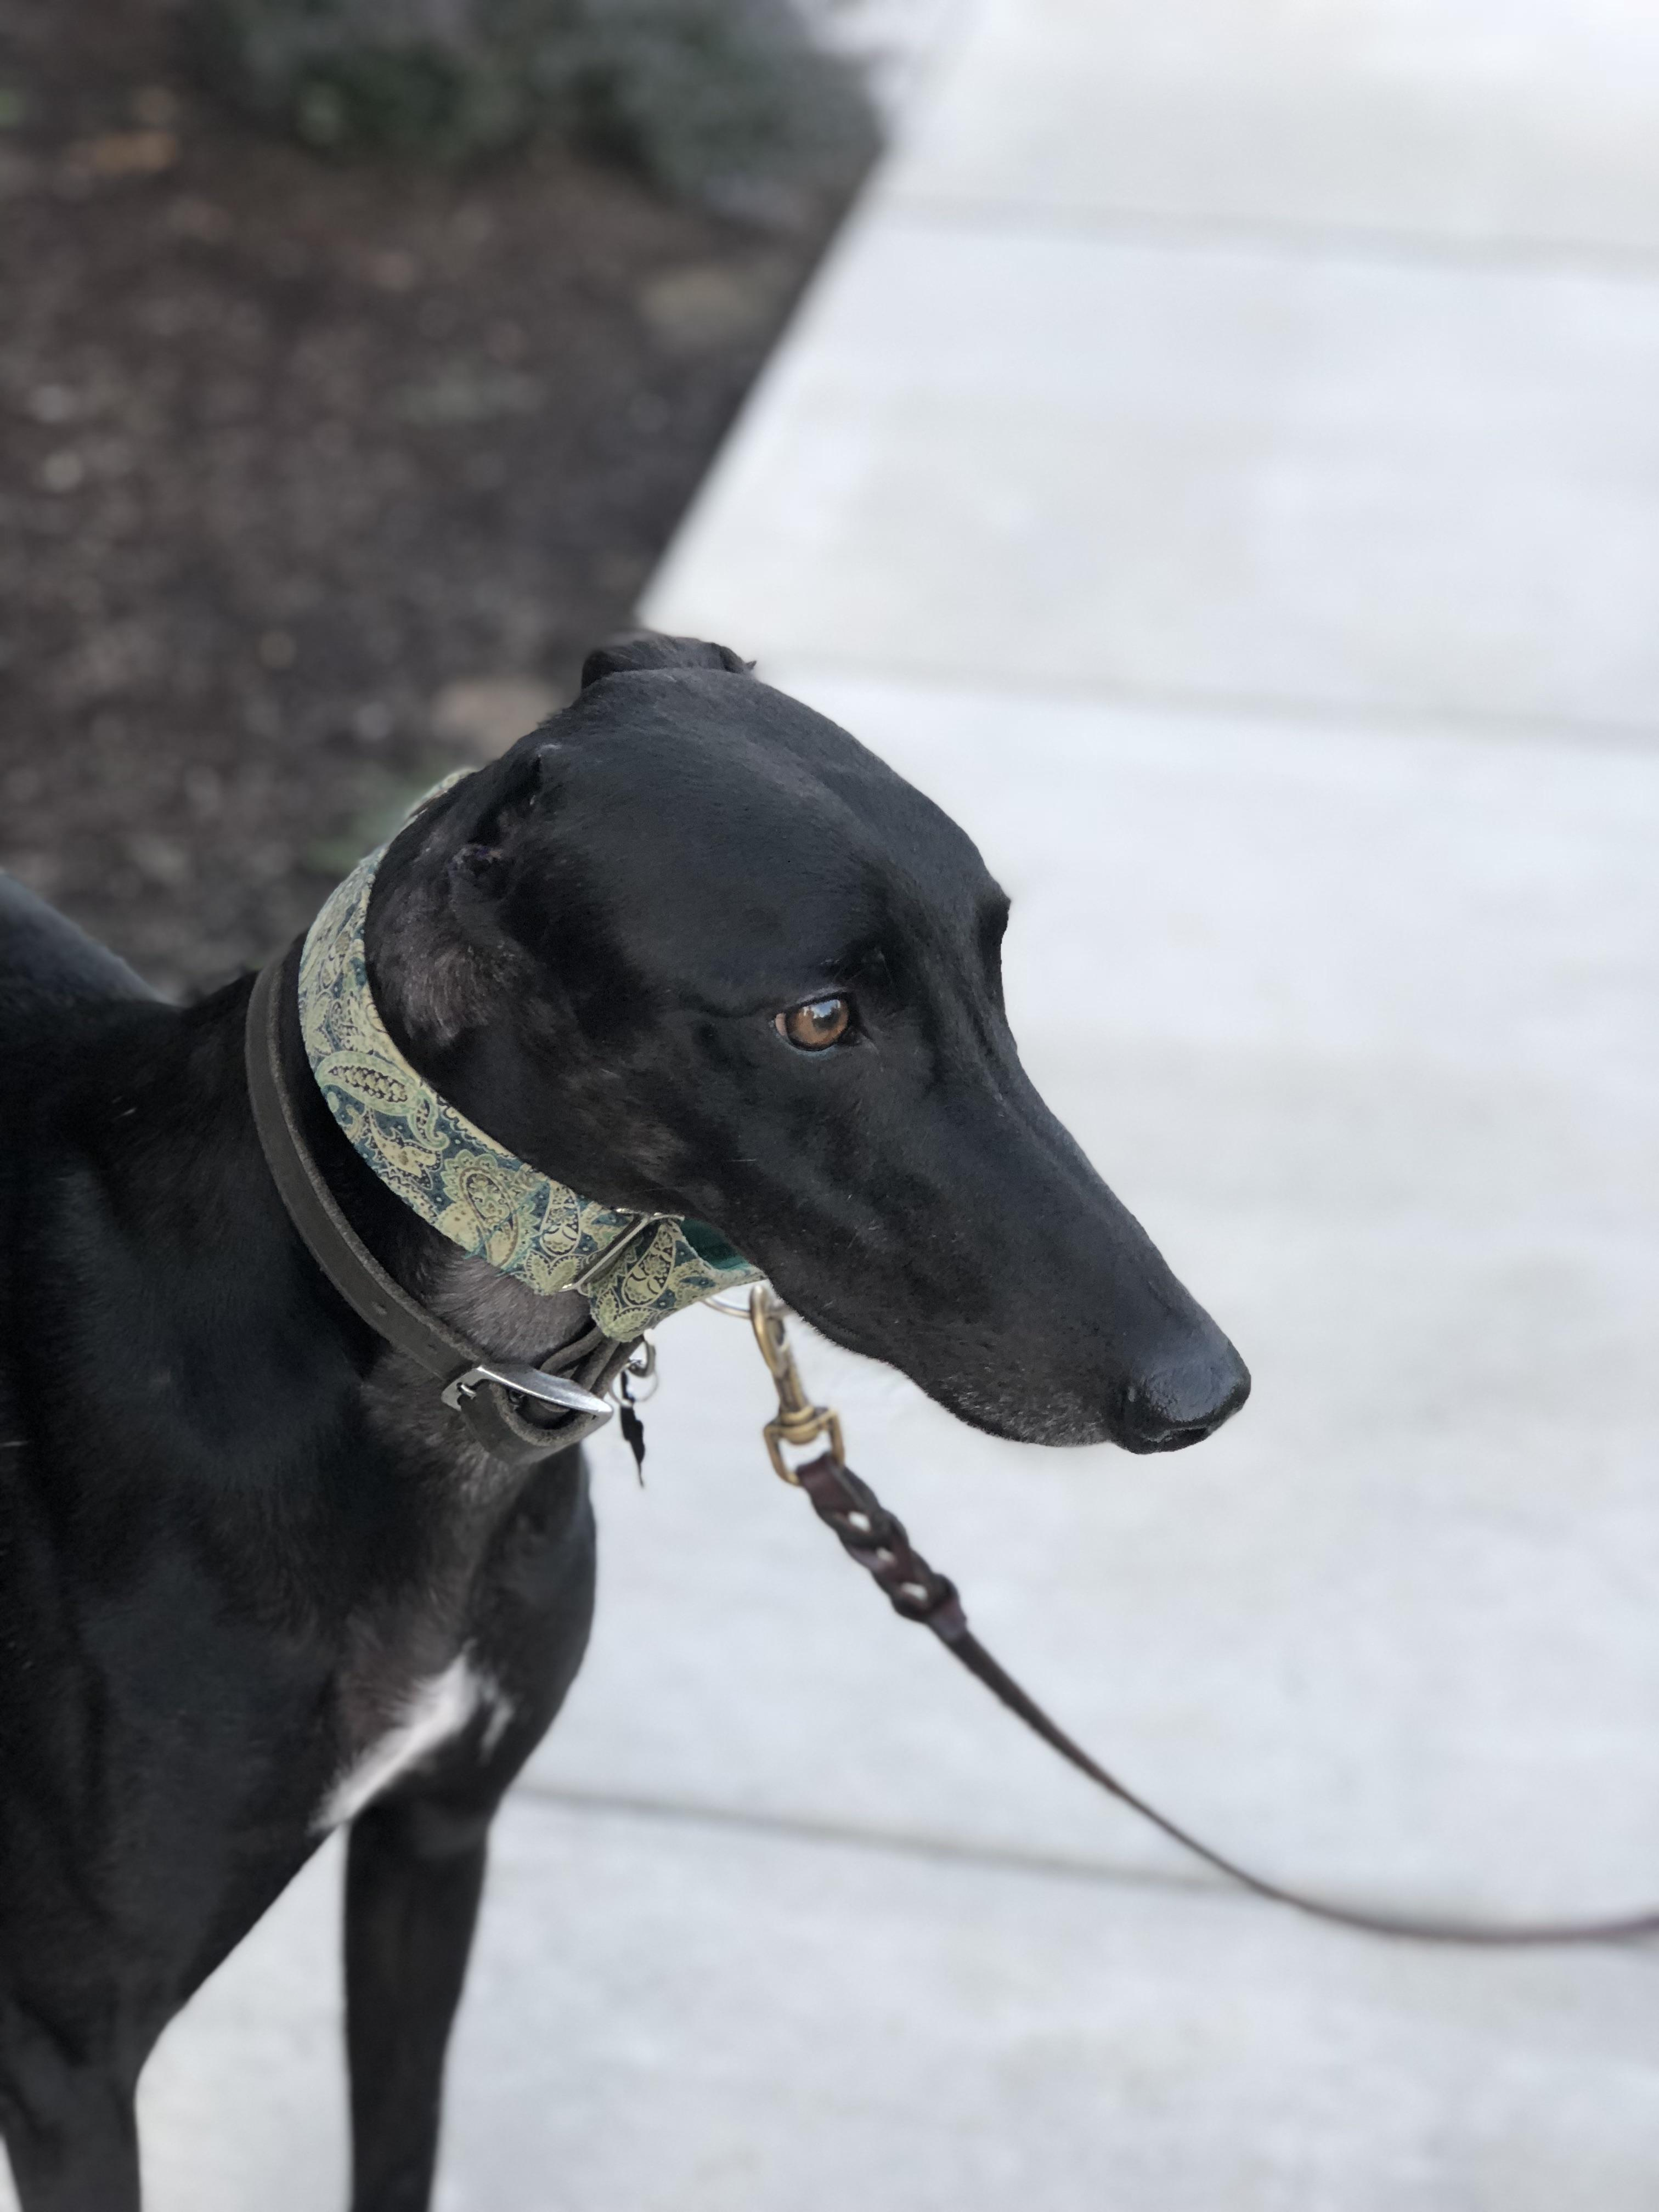 Dog With No Ears : Fergus, Ear!!, Often, Looks, Other, Greyhounds, Actually, Wonder